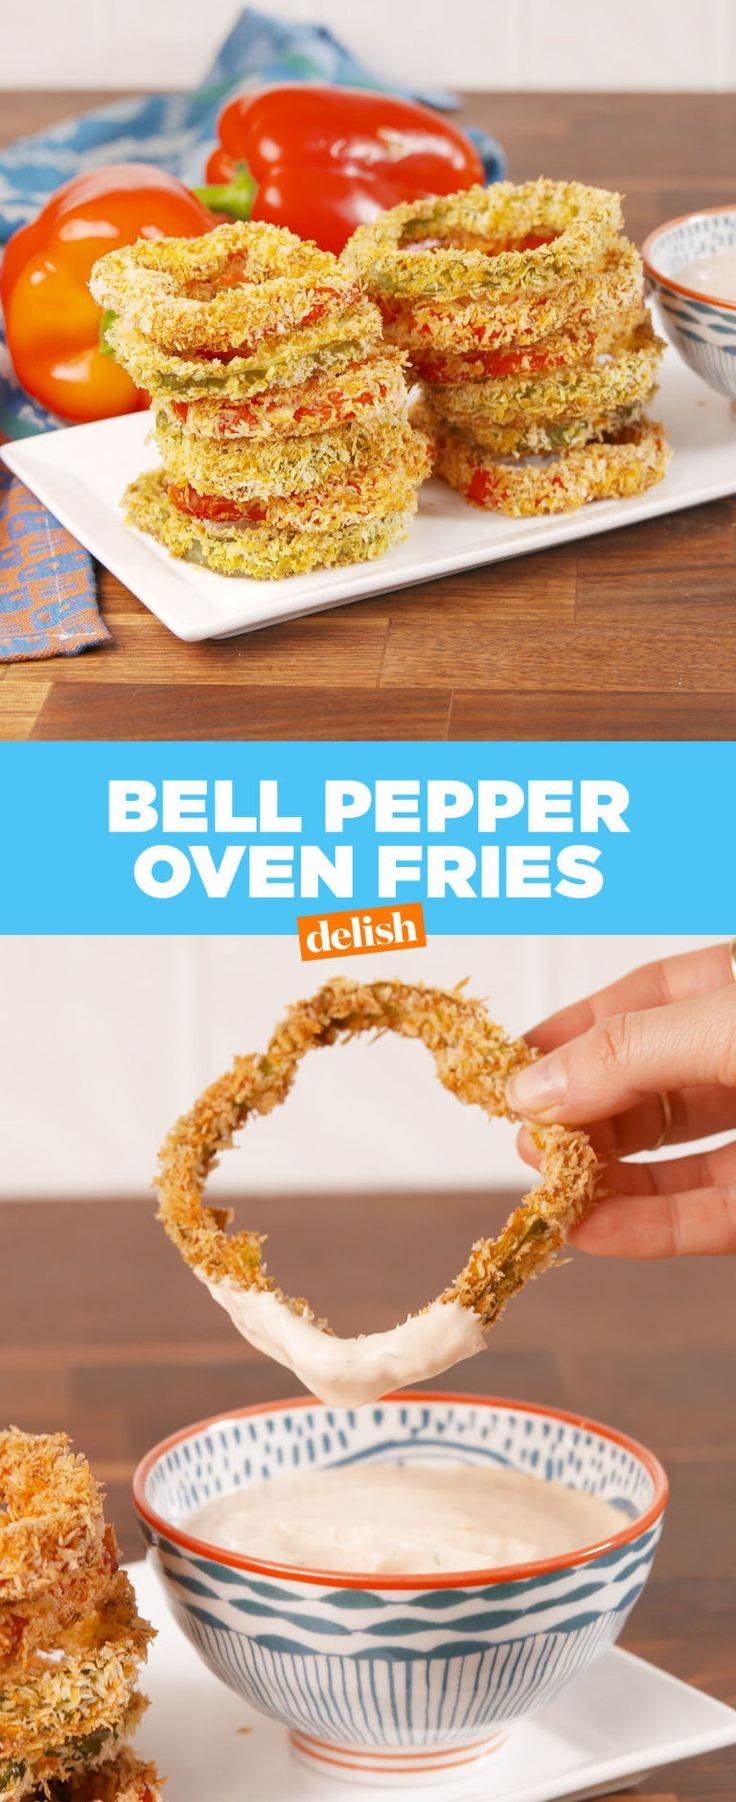 Bell Pepper Oven Fries >>> Onion Rings  - Delish.com